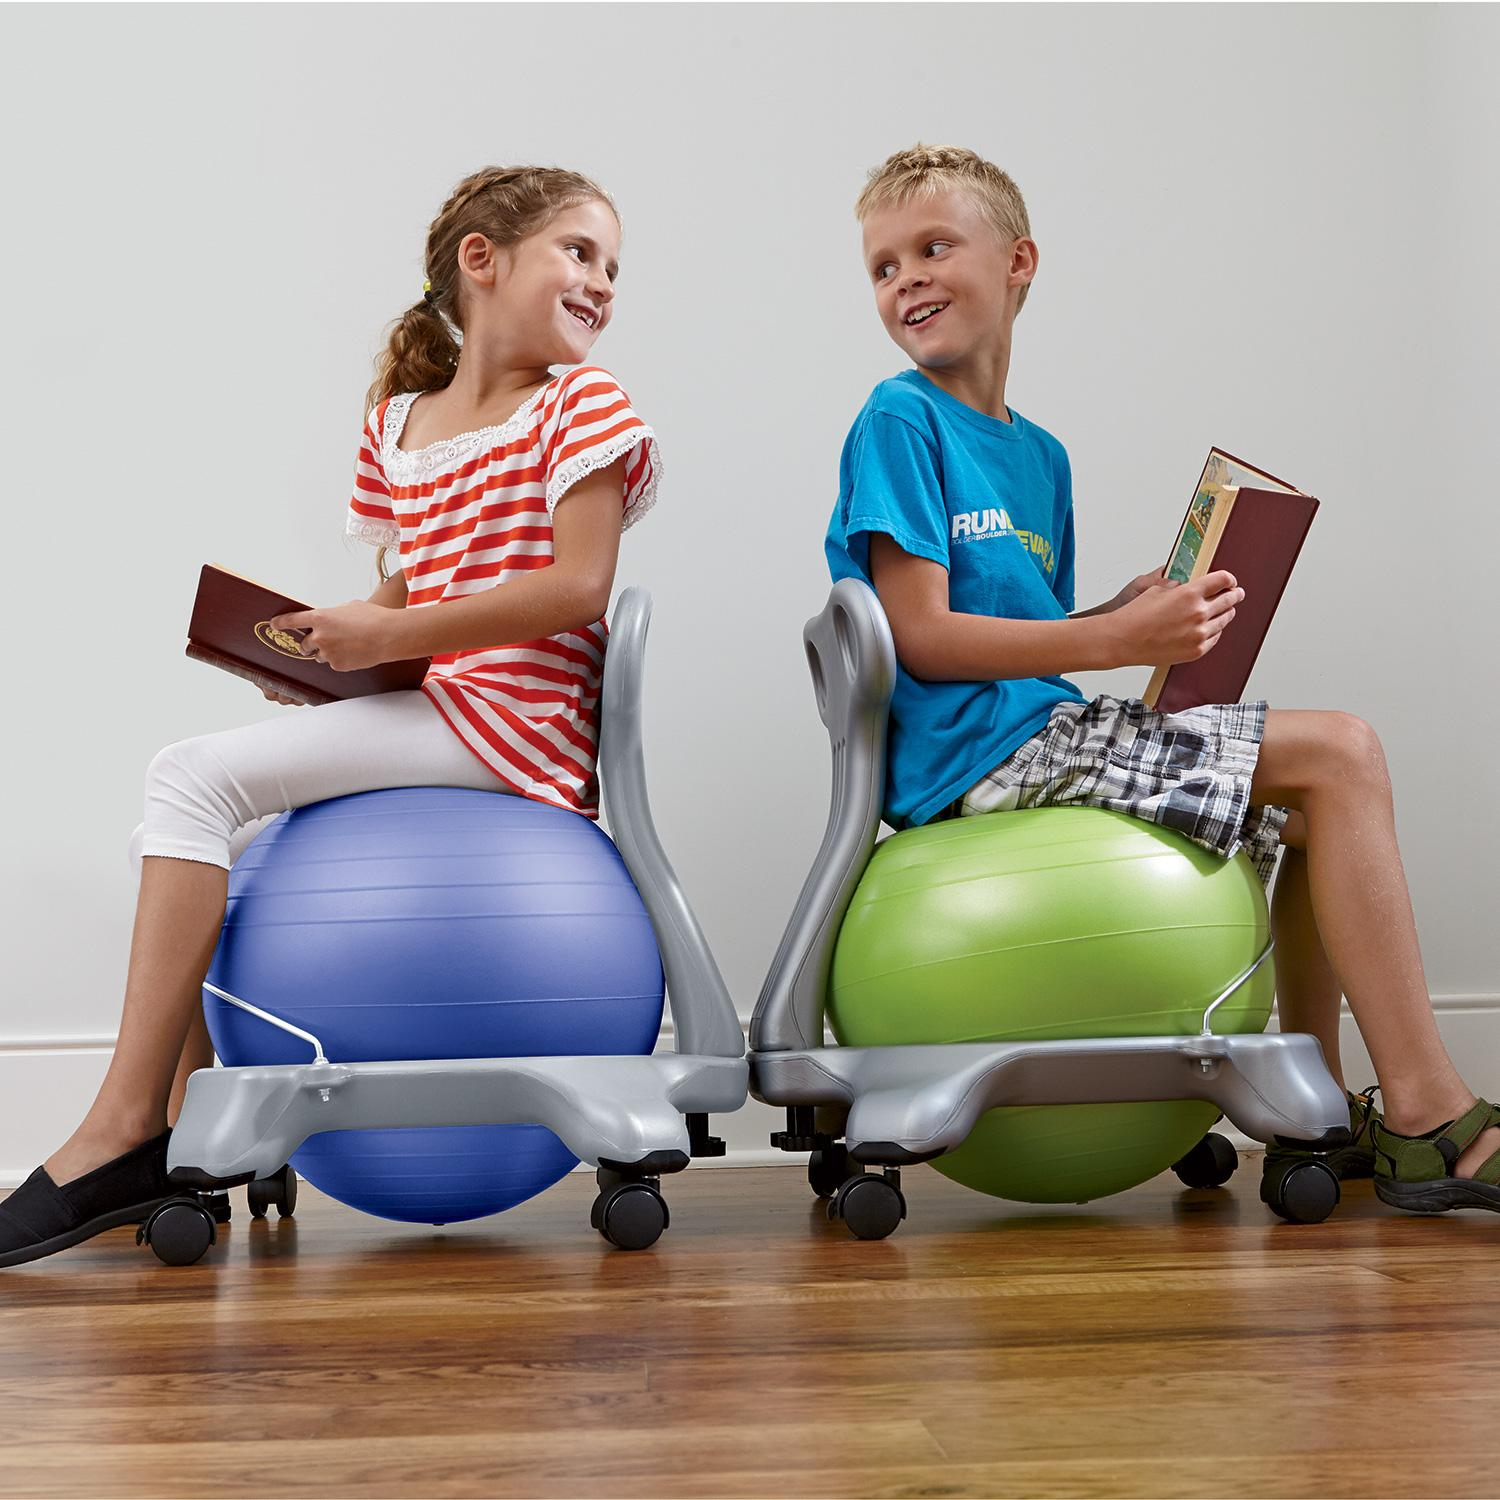 New Gaiam Kids Air Pump Balance Gym Exercise Ball Chair